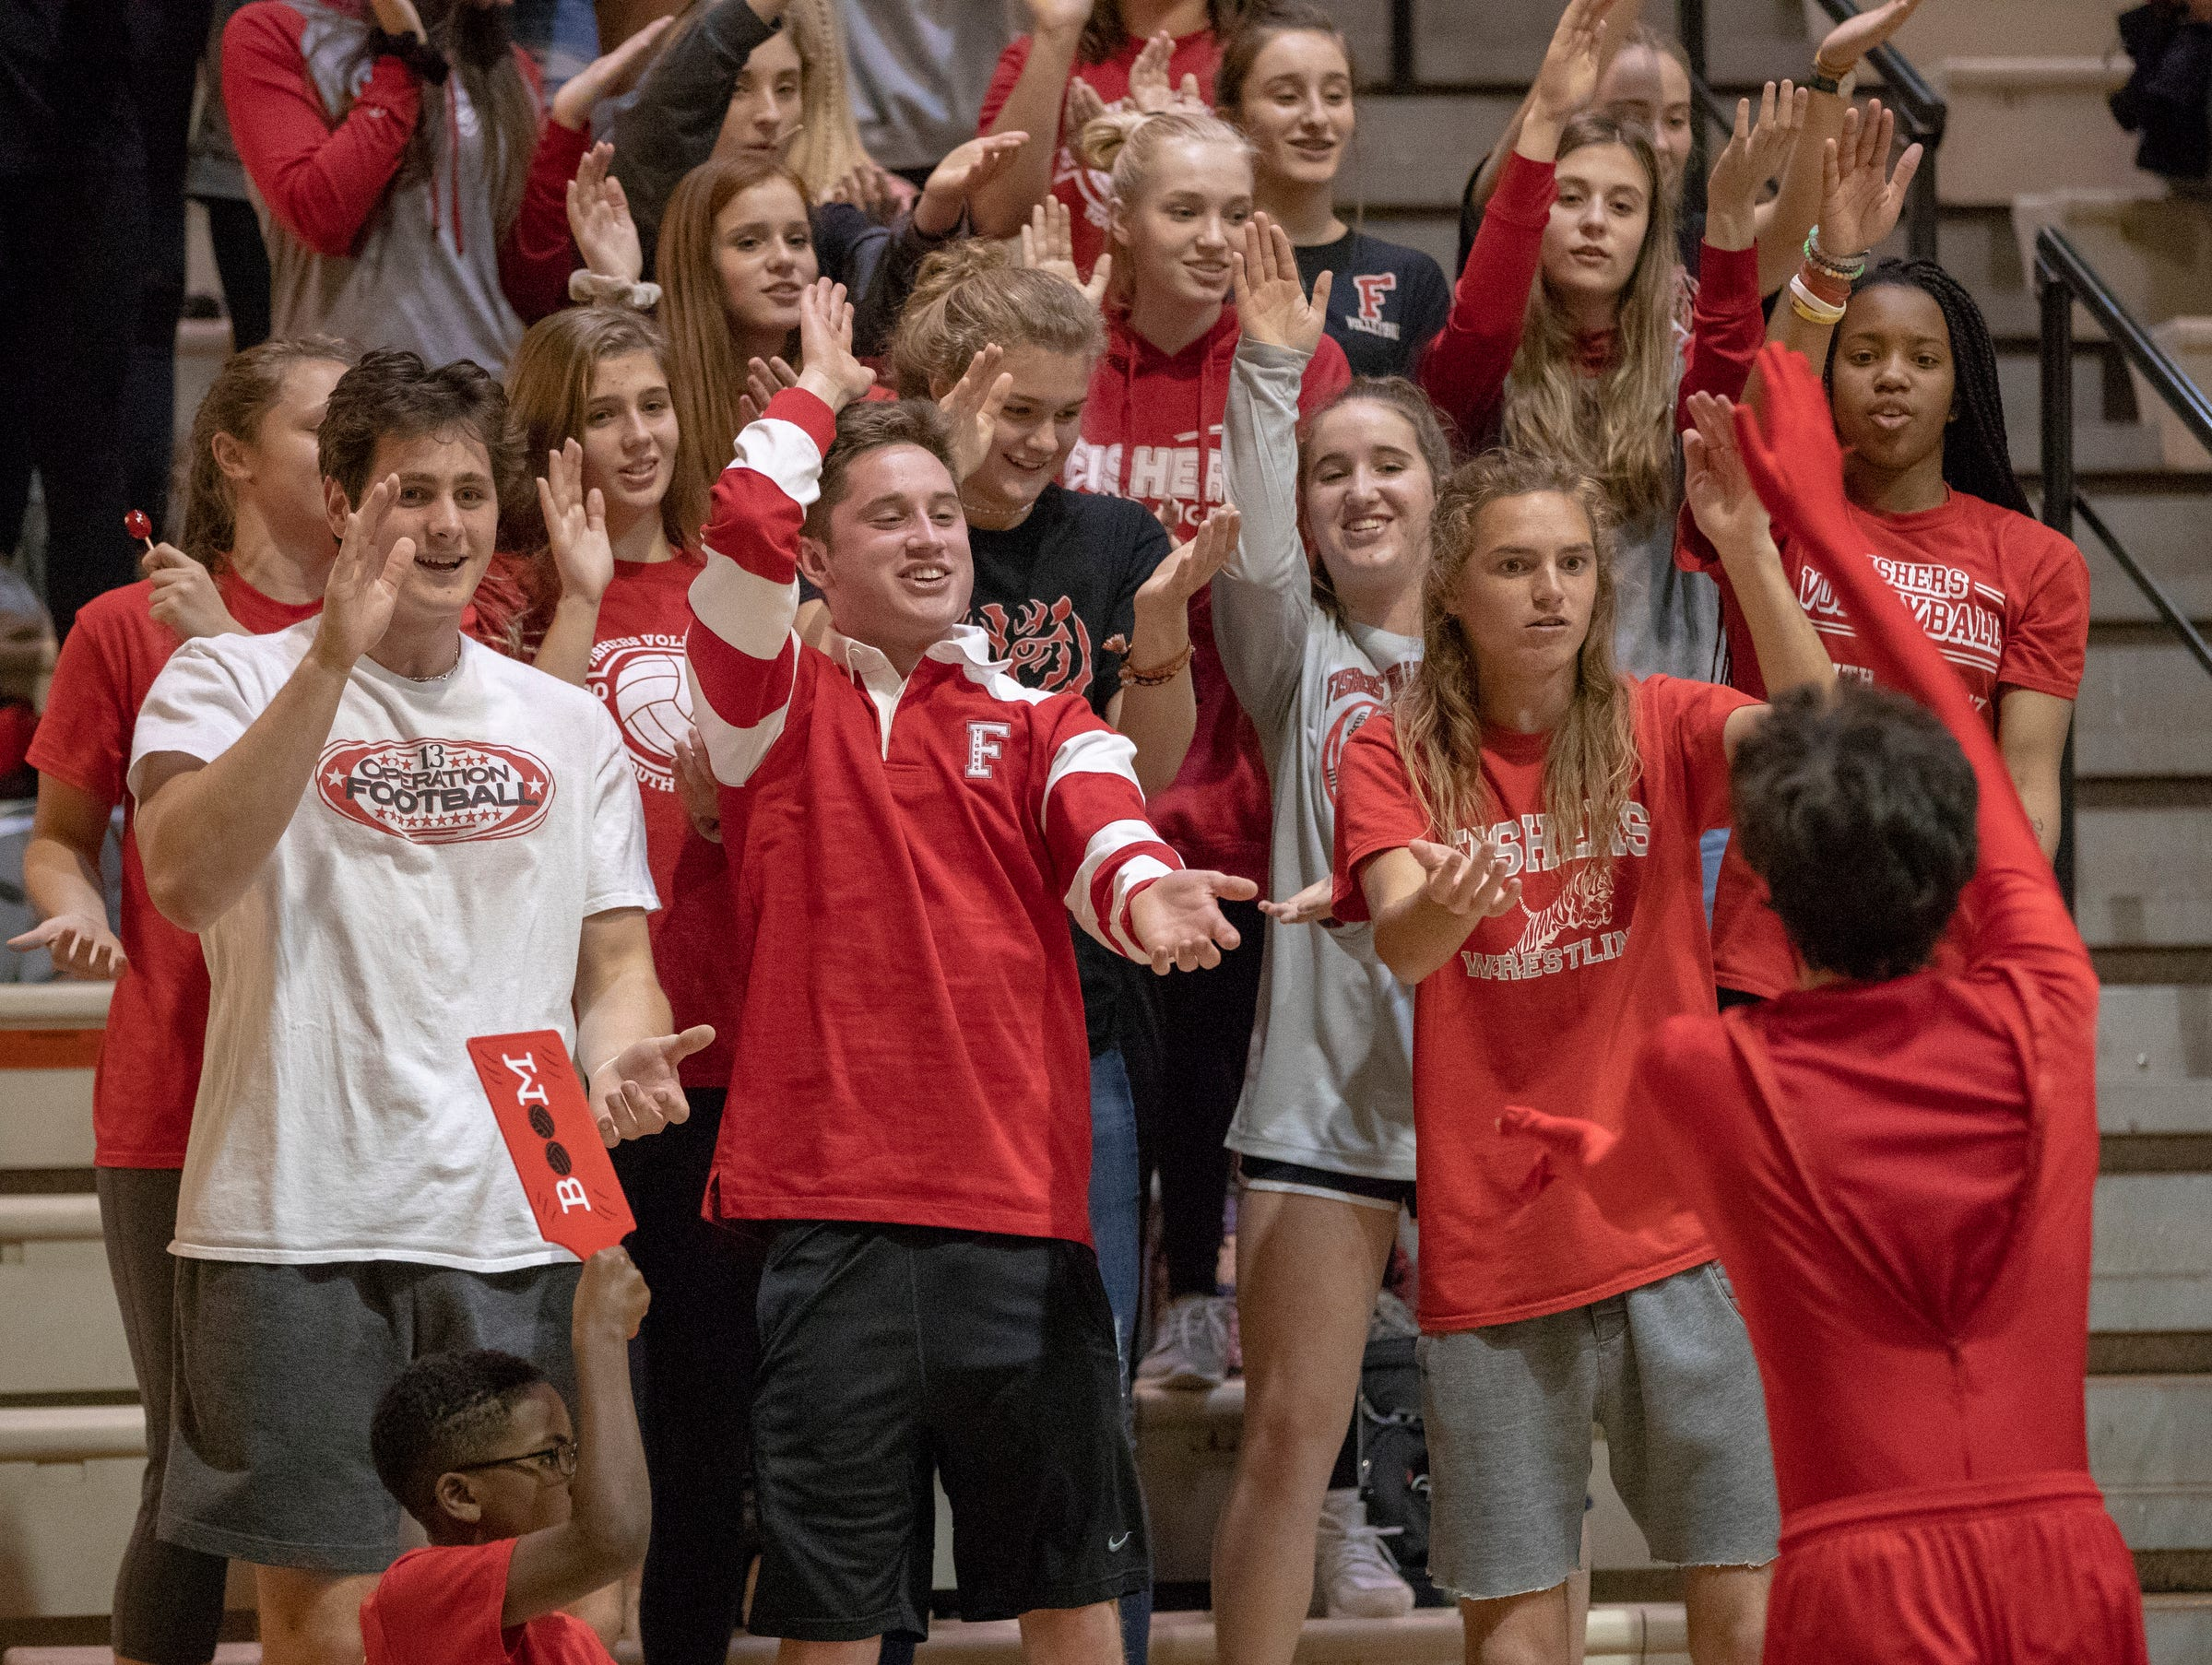 Fishers High School volleyball fans cheer as their team defeats Hamilton Southeastern High School in three straight sets in the first round of the sectional at Westfield High School, Westfield, Thursday, Oct. 11, 2018. The win matches them up with Westfield High School for a game on Saturday morning at 11a.m.